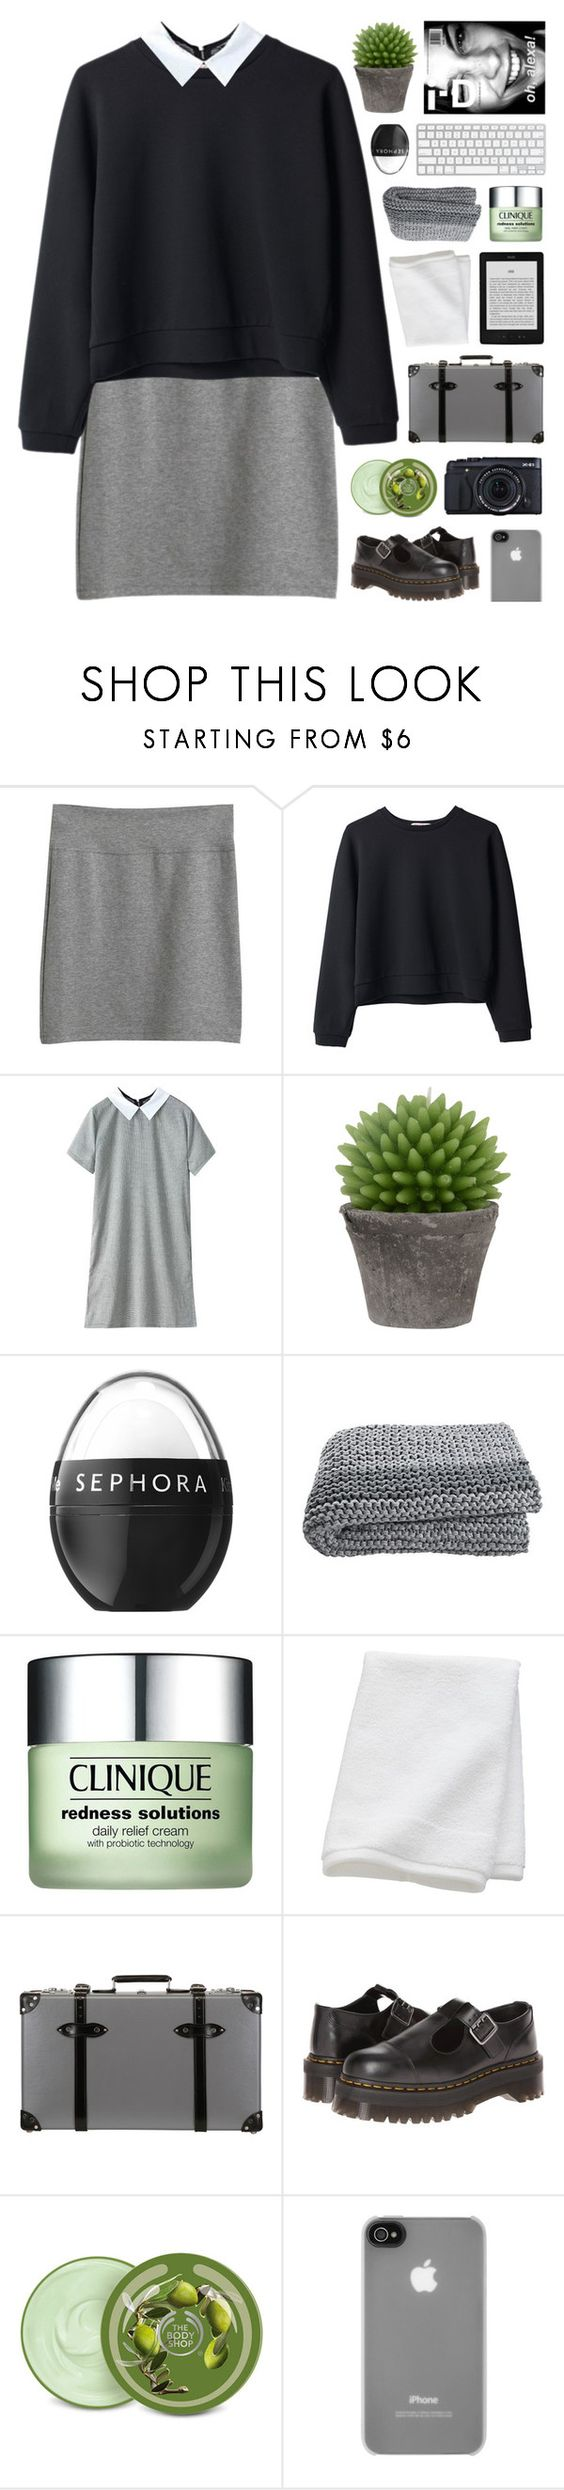 """""""quick note + read desc"""" by hhuricane ❤ liked on Polyvore featuring Organic by John Patrick, Broste Copenhagen, Sephora Collection, Clinique, CB2, Globe-Trotter, Dr. Martens, The Body Shop and Incase"""